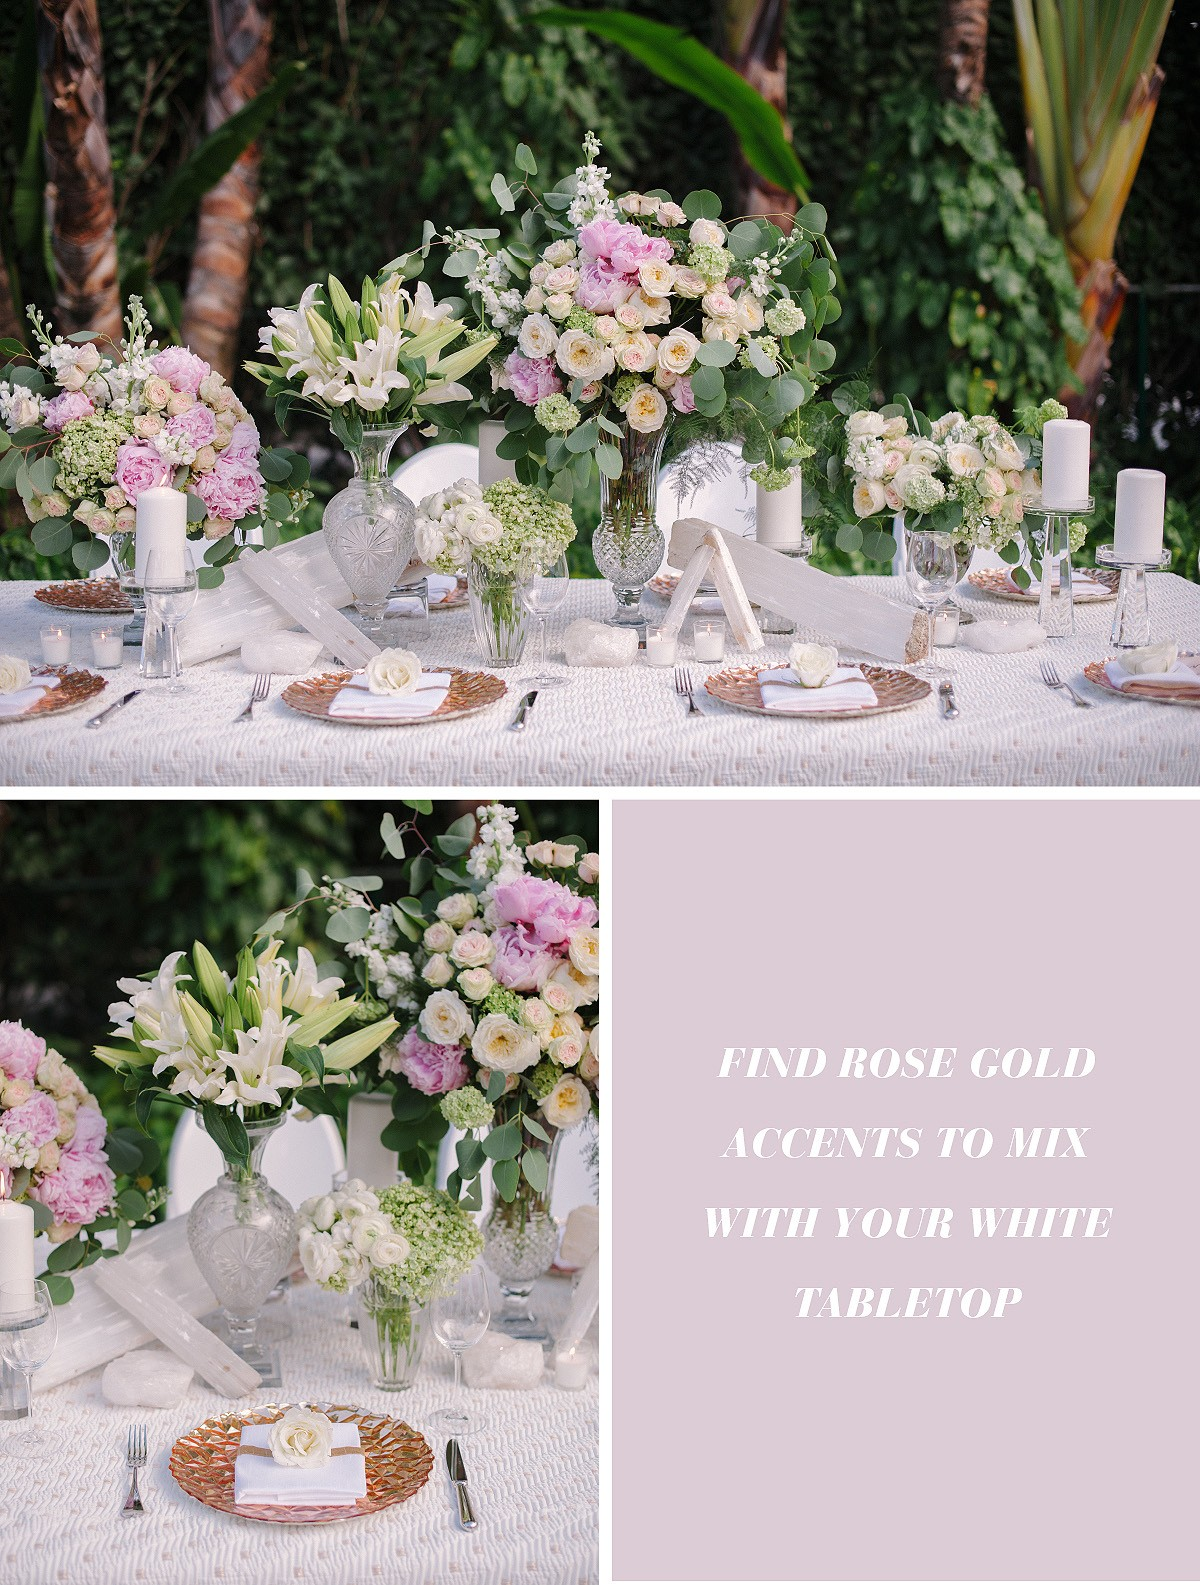 Our All Time Favorite Piece Of Advice No Matter What Wedding Theme Youre Going For White Decor Is Timeless You Can Take It Through The Seasons